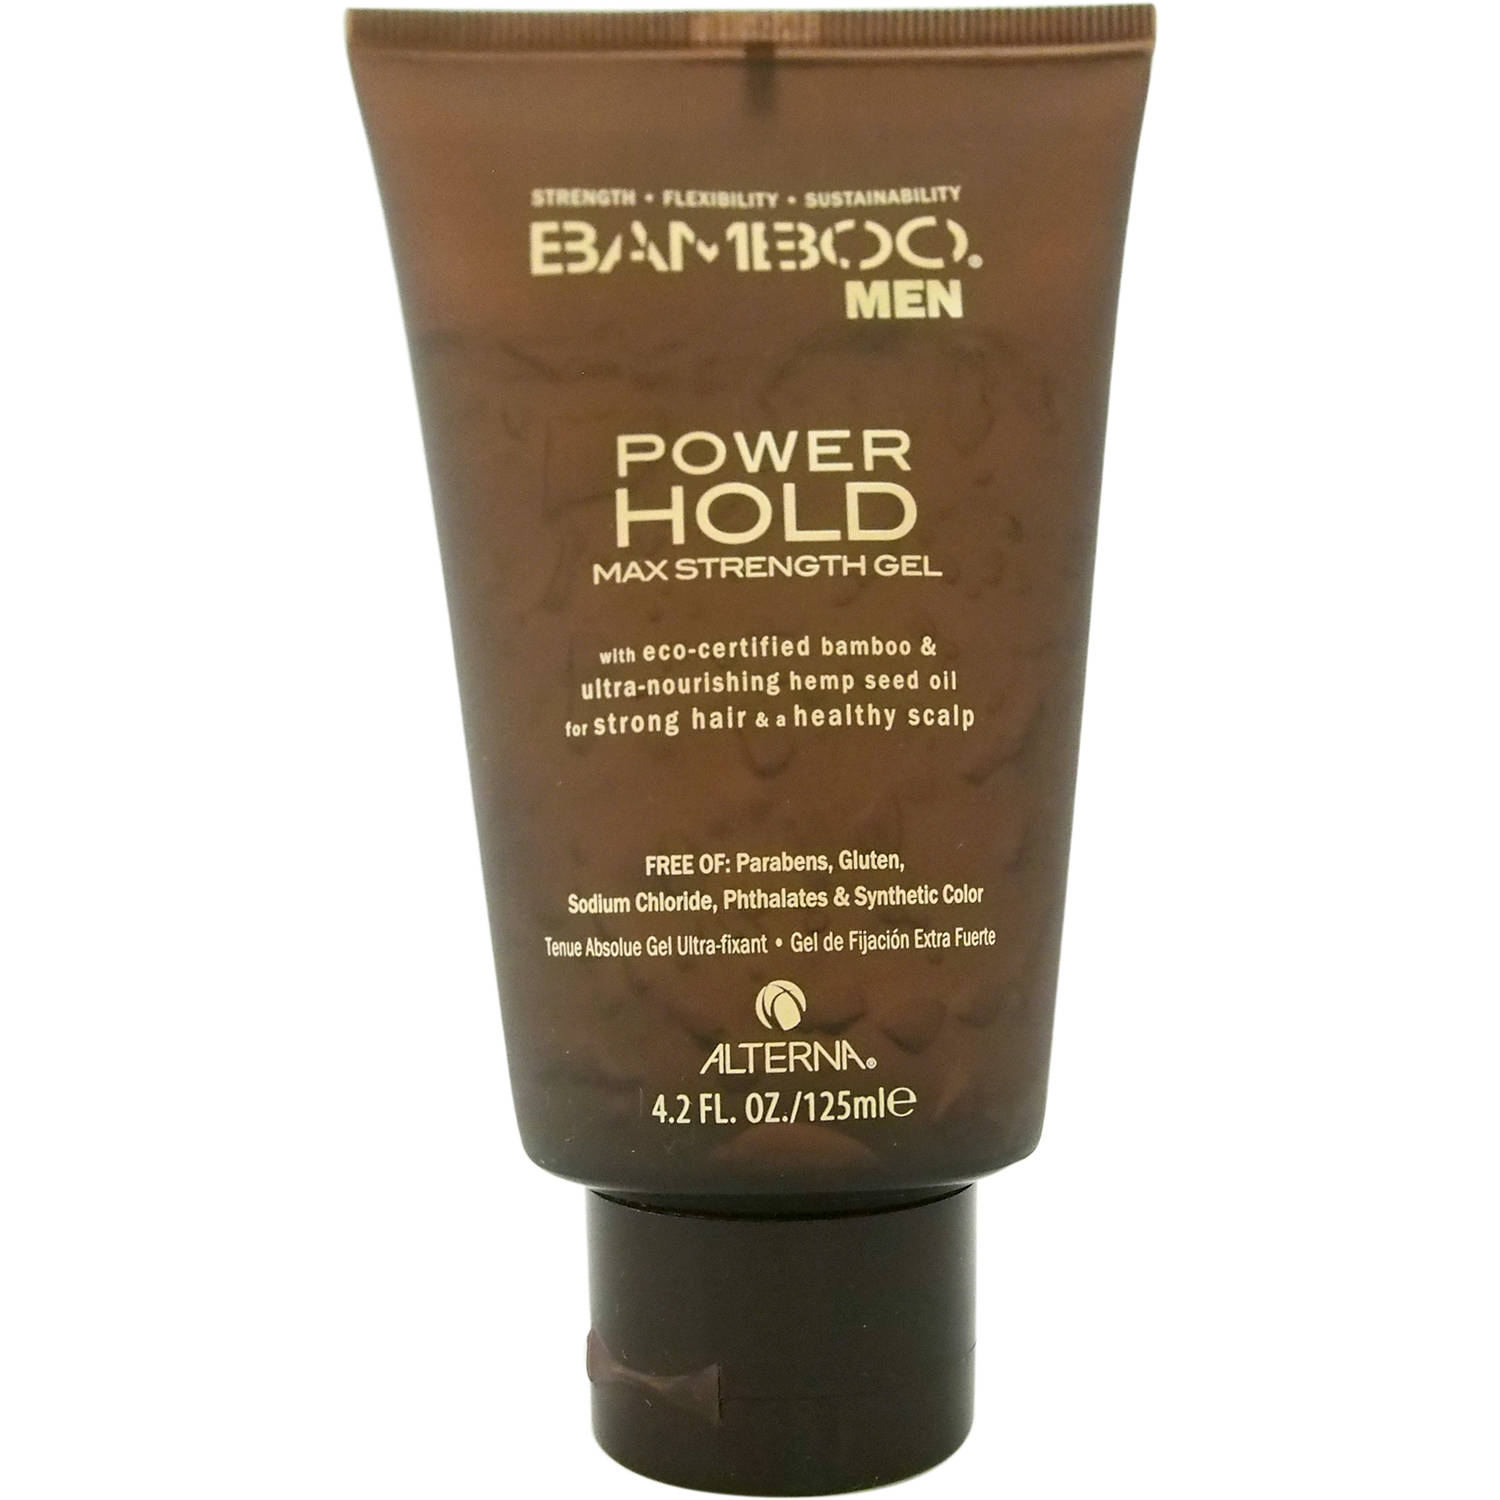 Alterna Bamboo Men Power Hold Max Strength Gel for Men, 4.2 fl oz